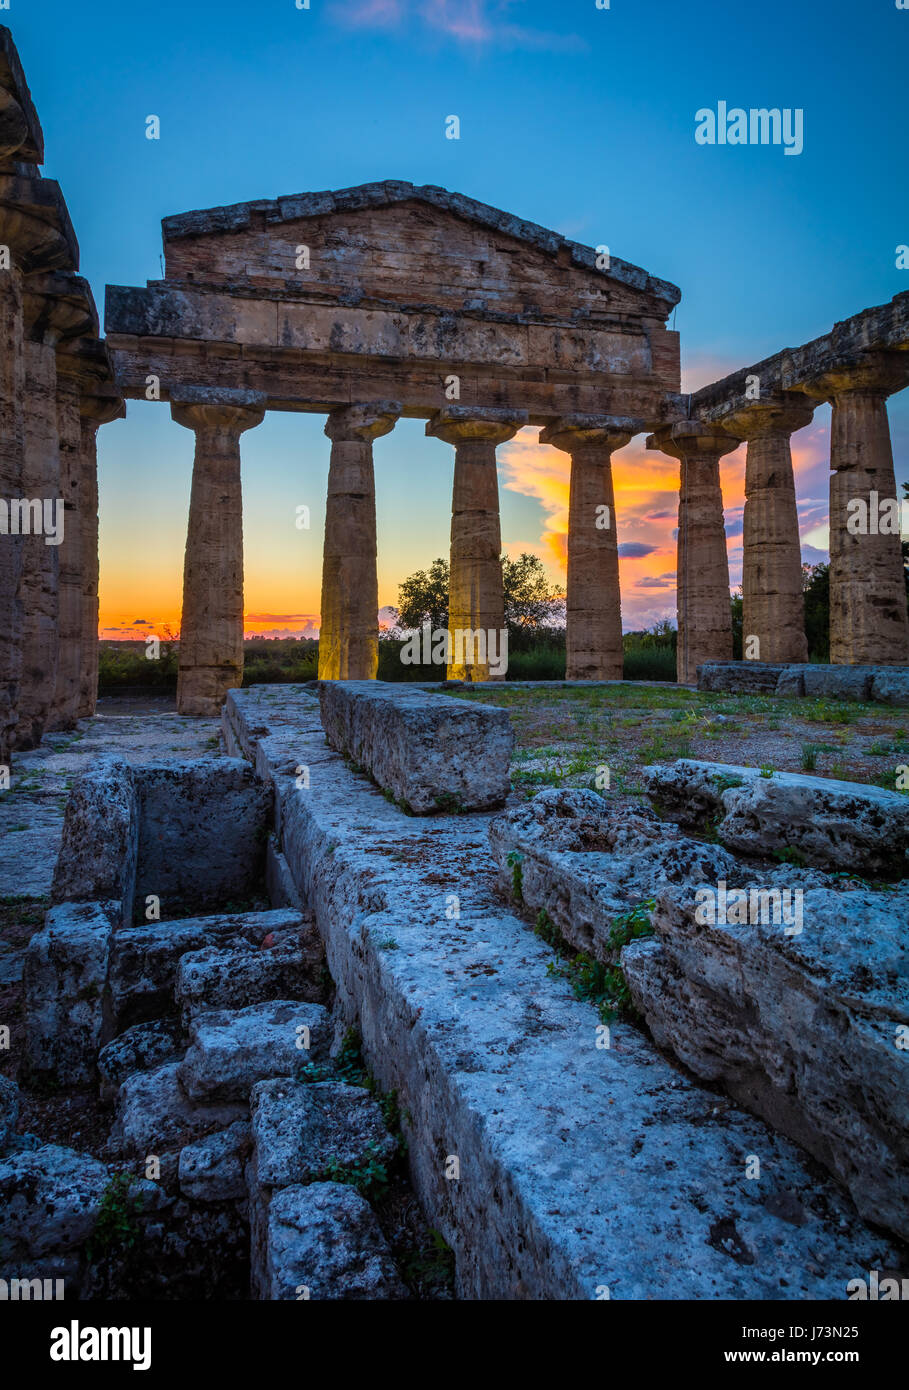 Paestum was a major ancient Greek city on the coast of the Tyrrhenian Sea in Magna Graecia (southern Italy). The - Stock Image